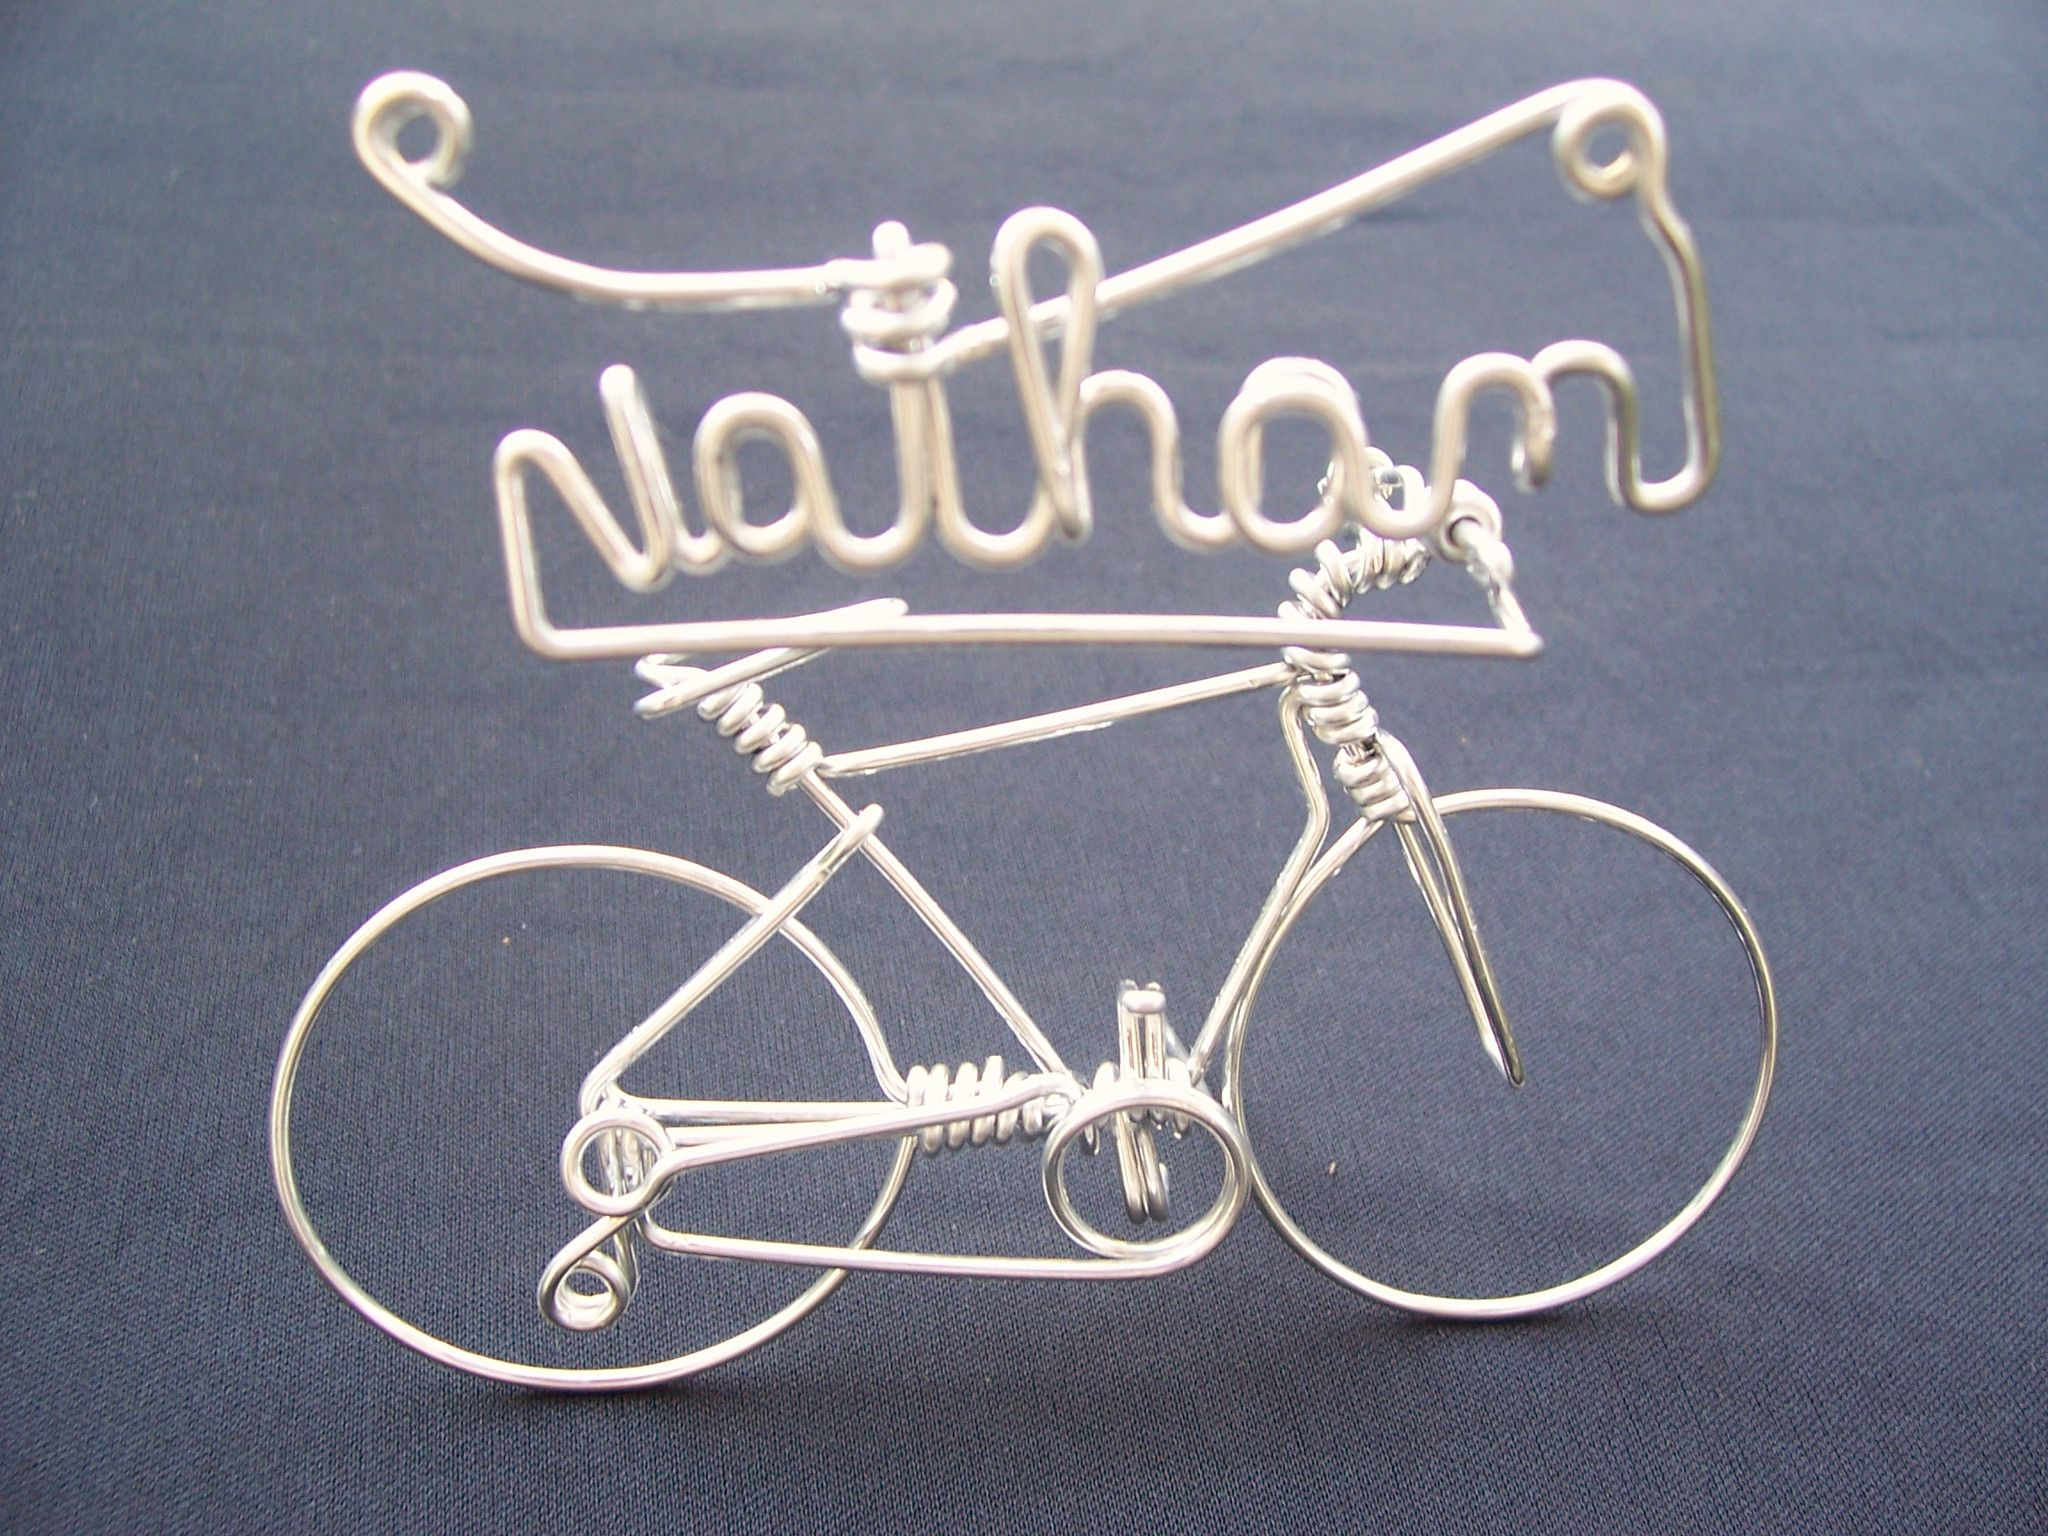 Personalized name ornaments - Custom Your Own Name Bike Personalized Bicycle Decor Gifts